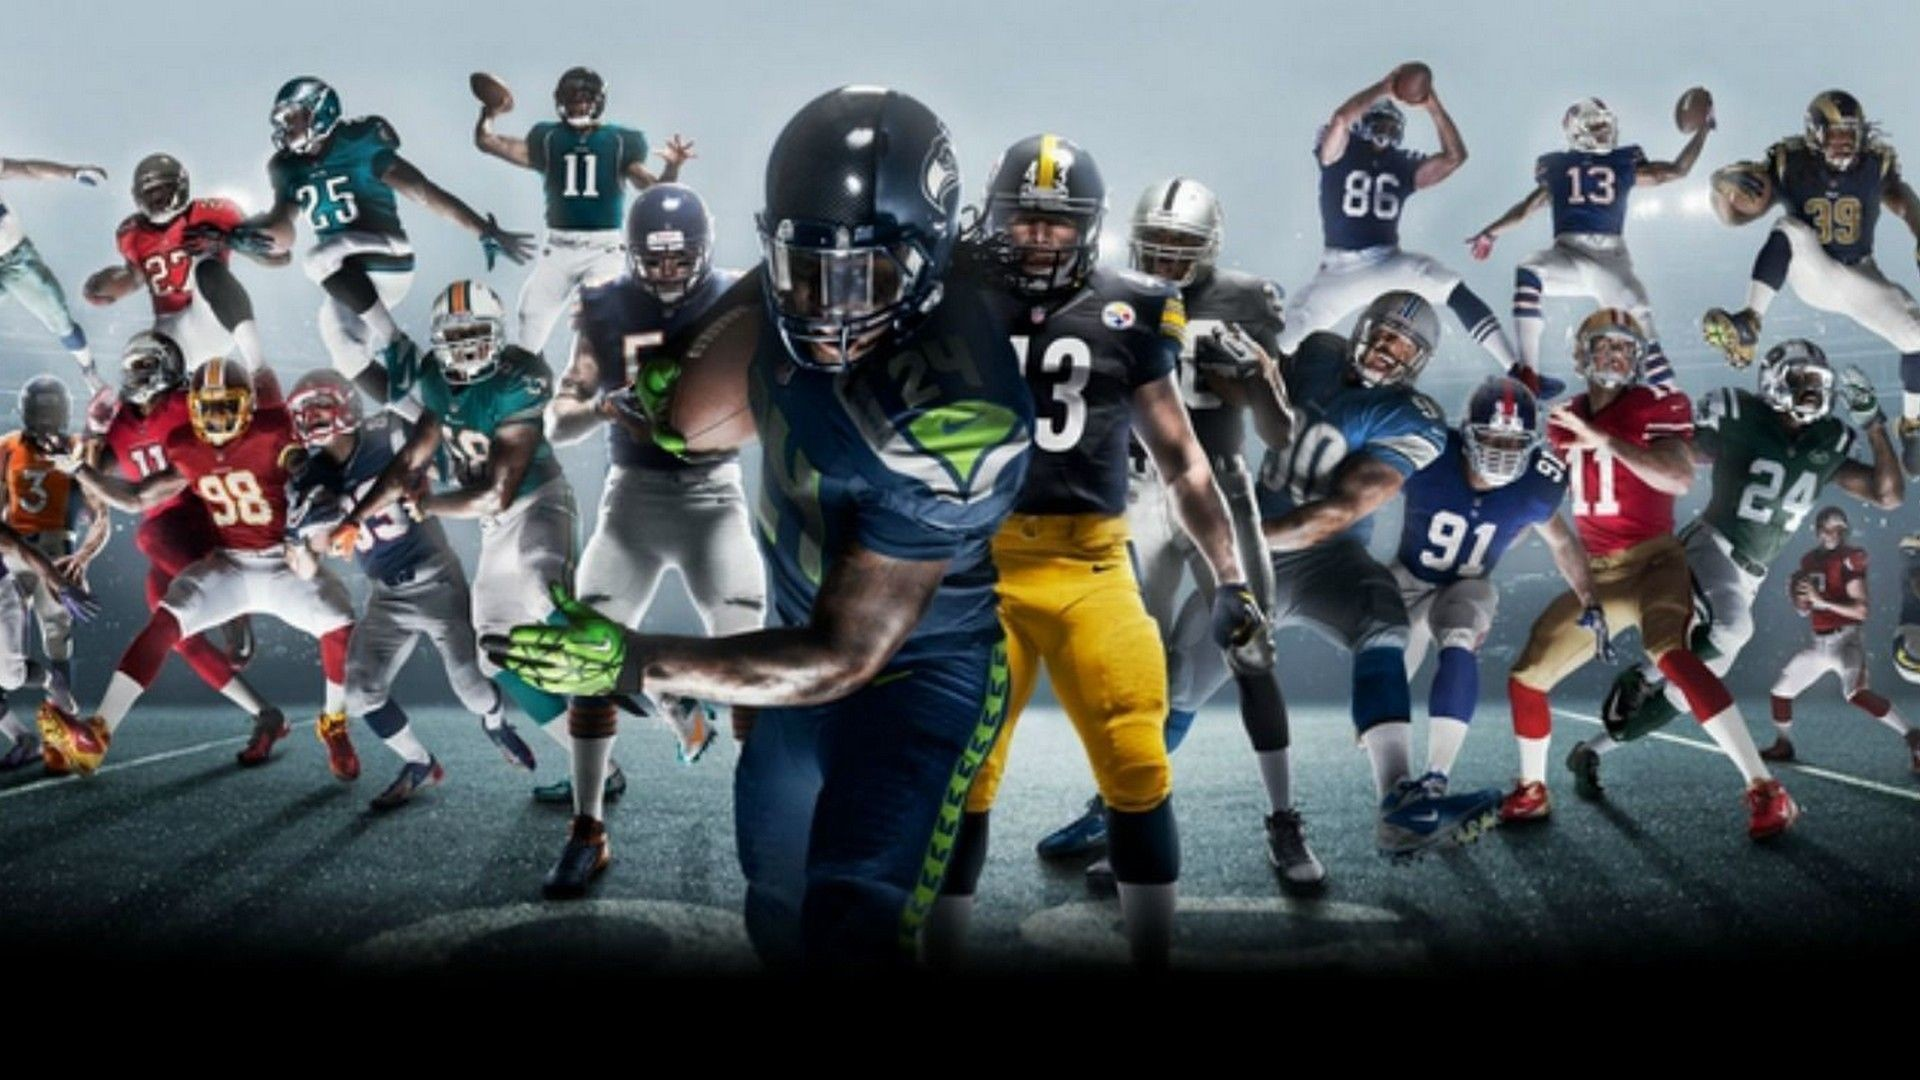 1920x1080 Wallpapers Cool NFL | Best NFL Wallpapers